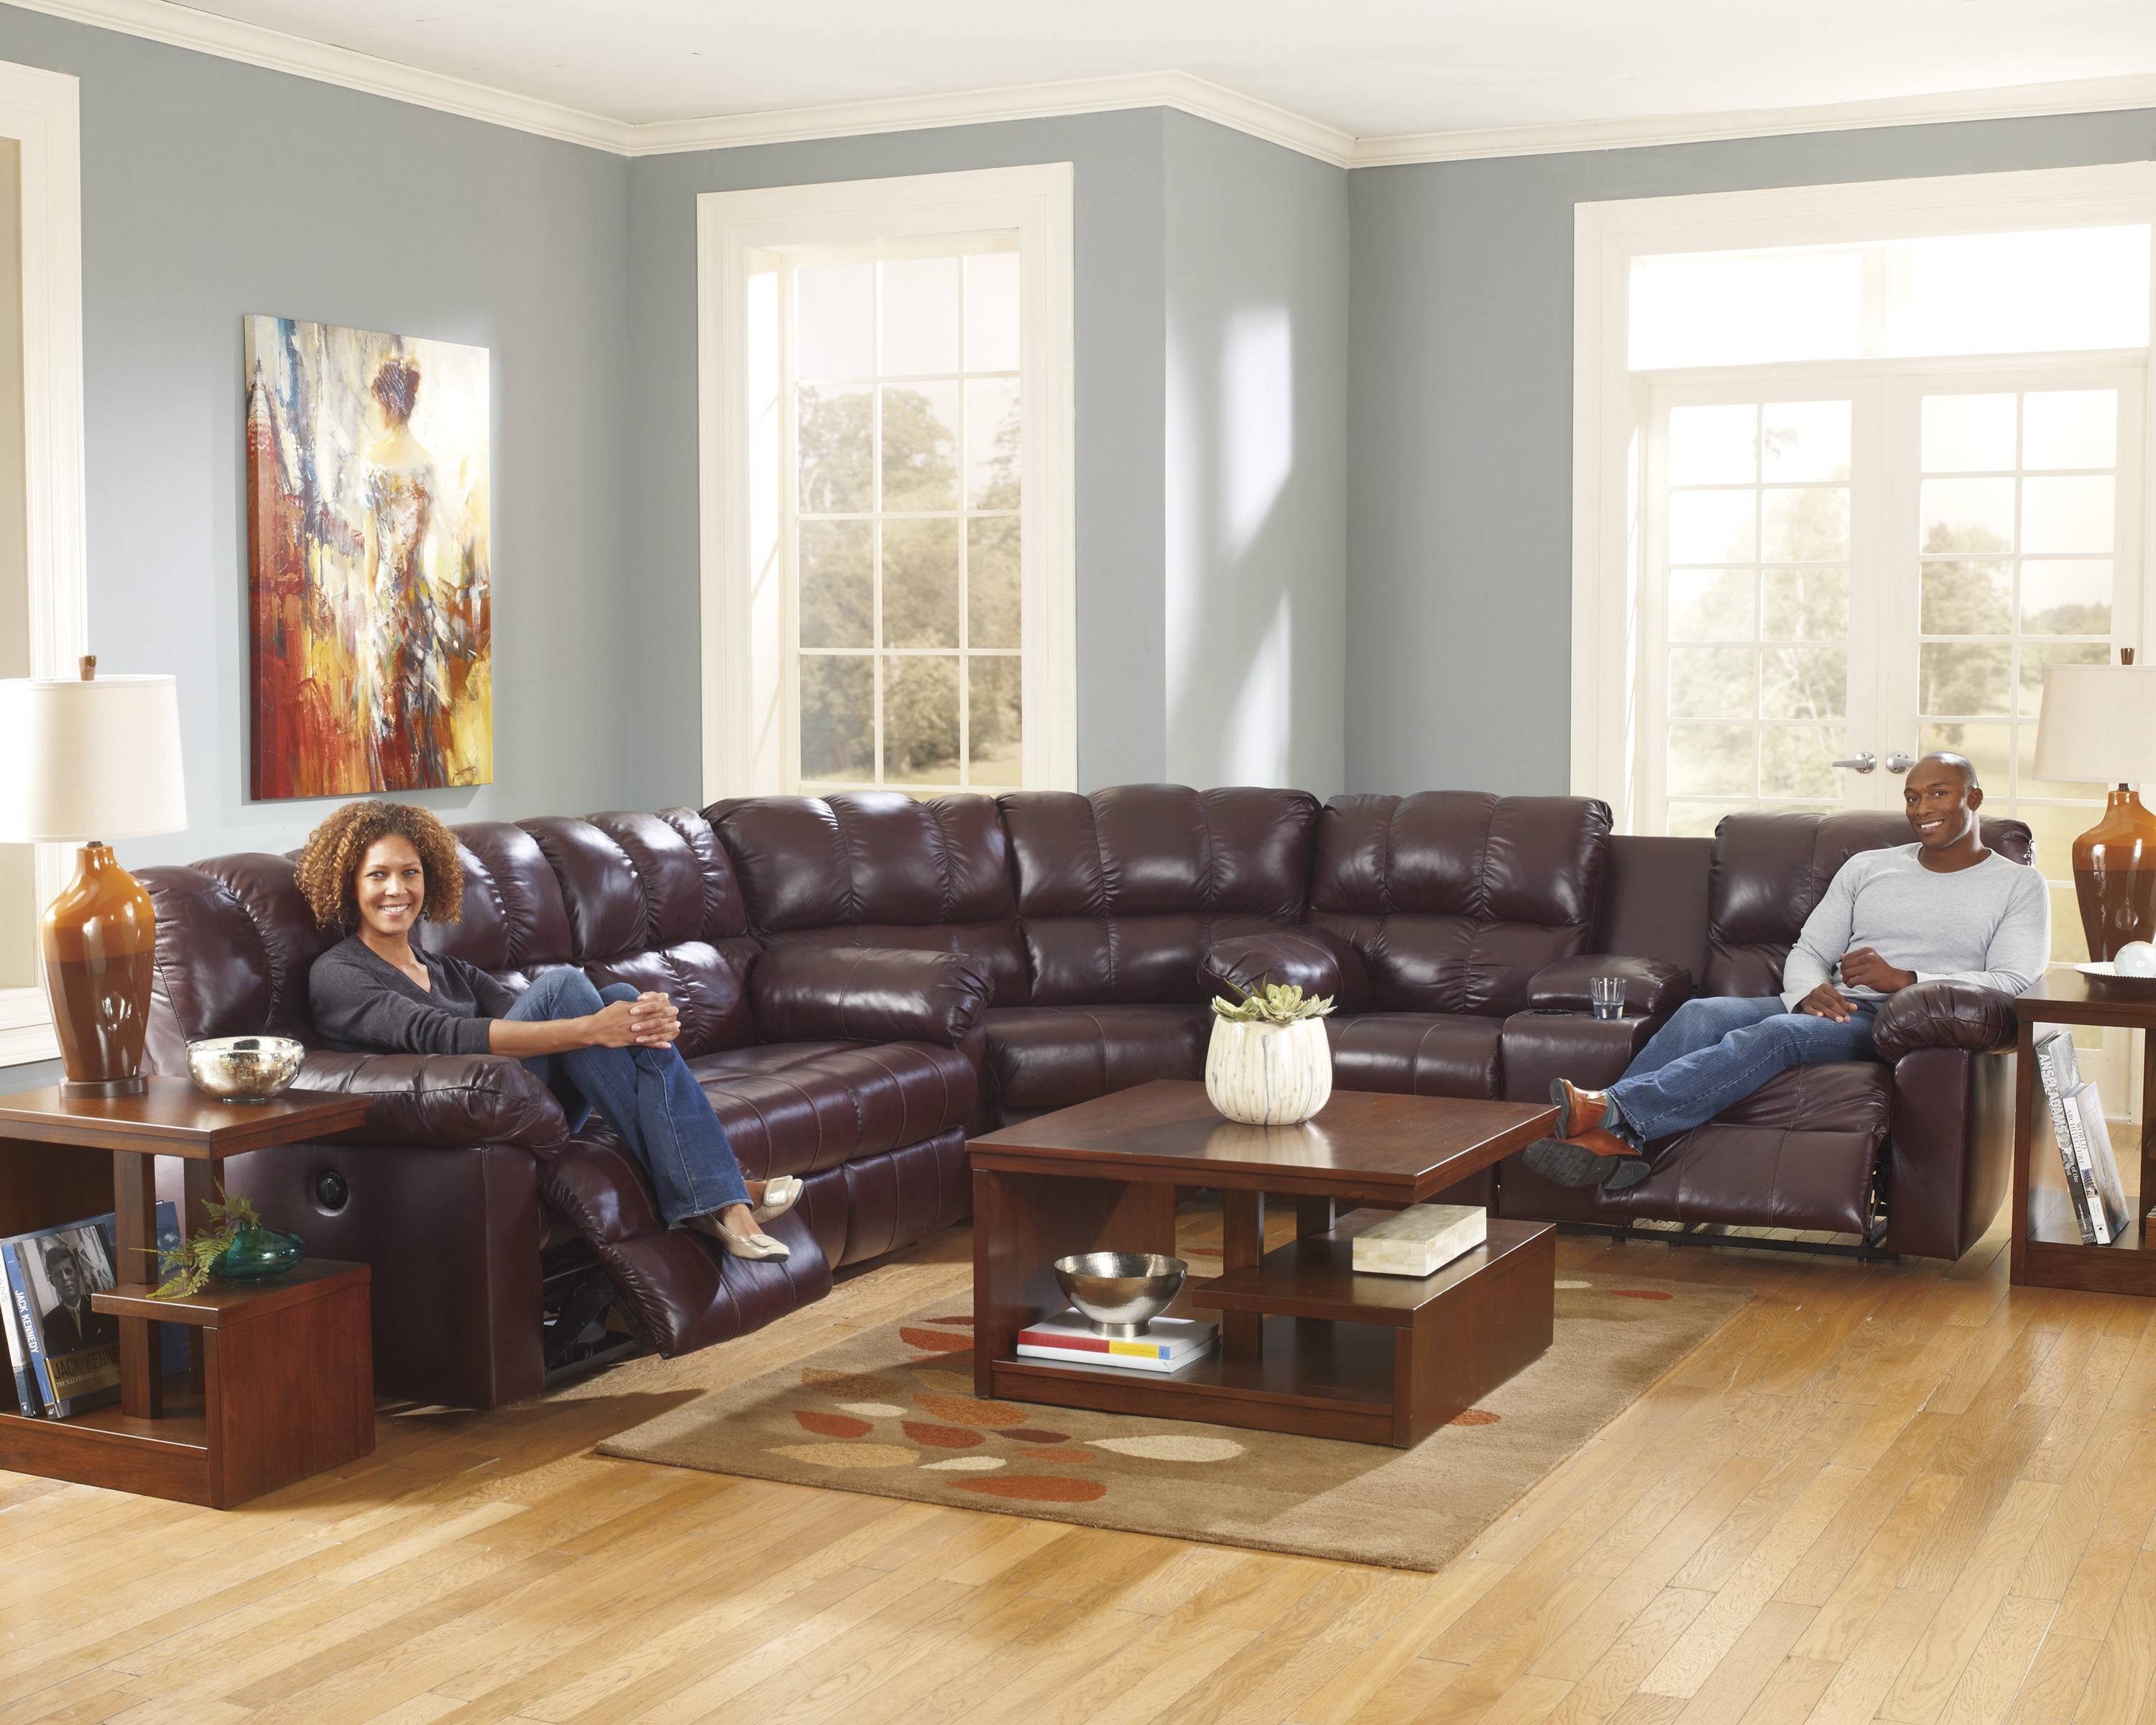 Leather Motion Recliner Sofas, Sectionals - Furniture Decor Showroom in Leather Motion Sectional Sofa (Image 16 of 25)